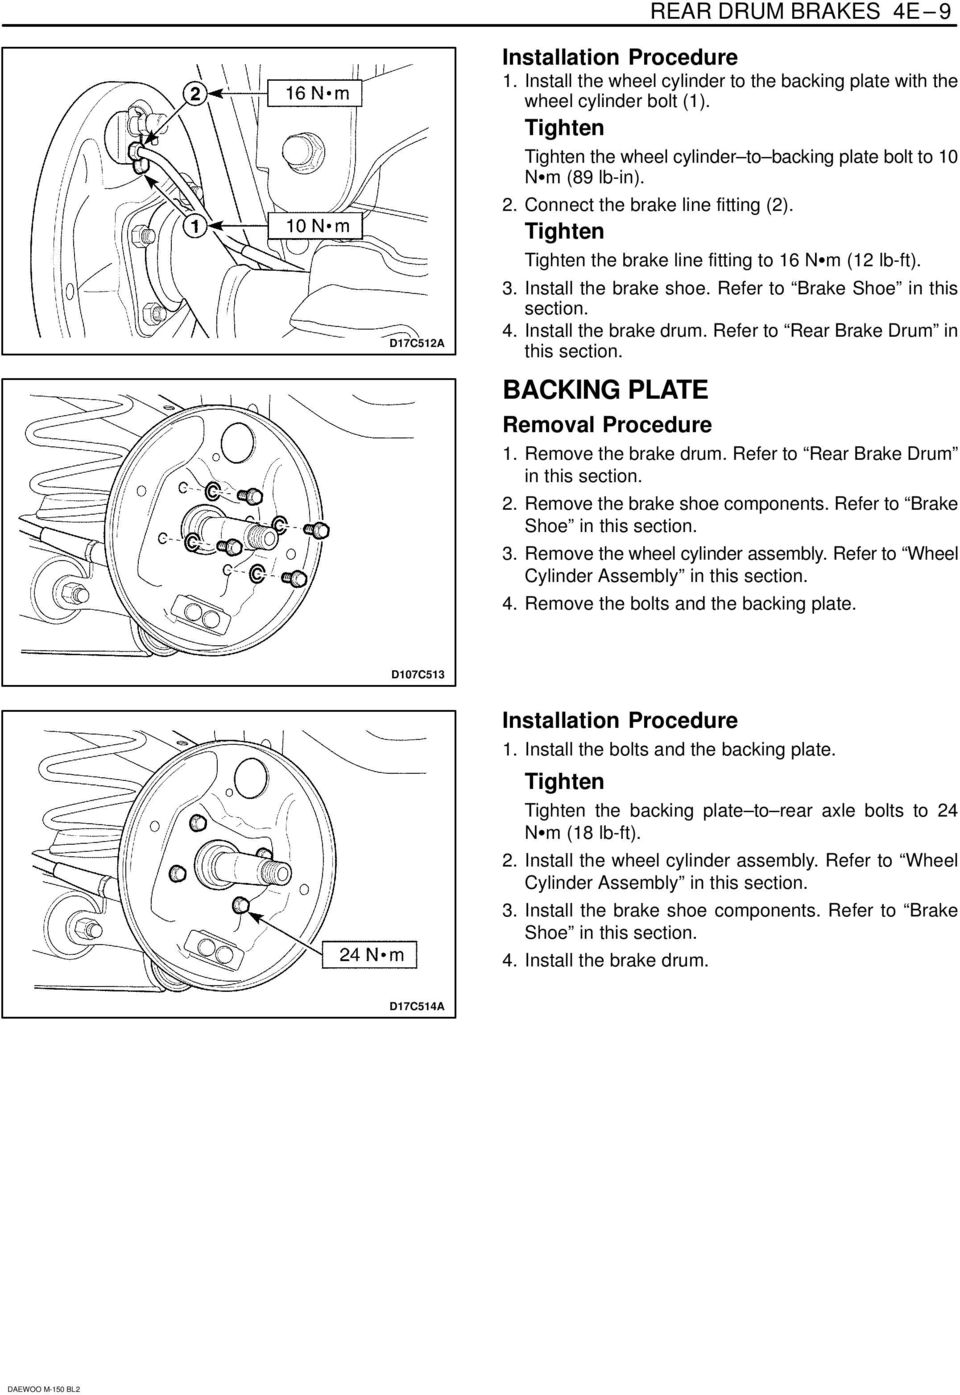 SECTION 4E REAR DRUM BRAKES TABLE OF CONTENTS - PDF